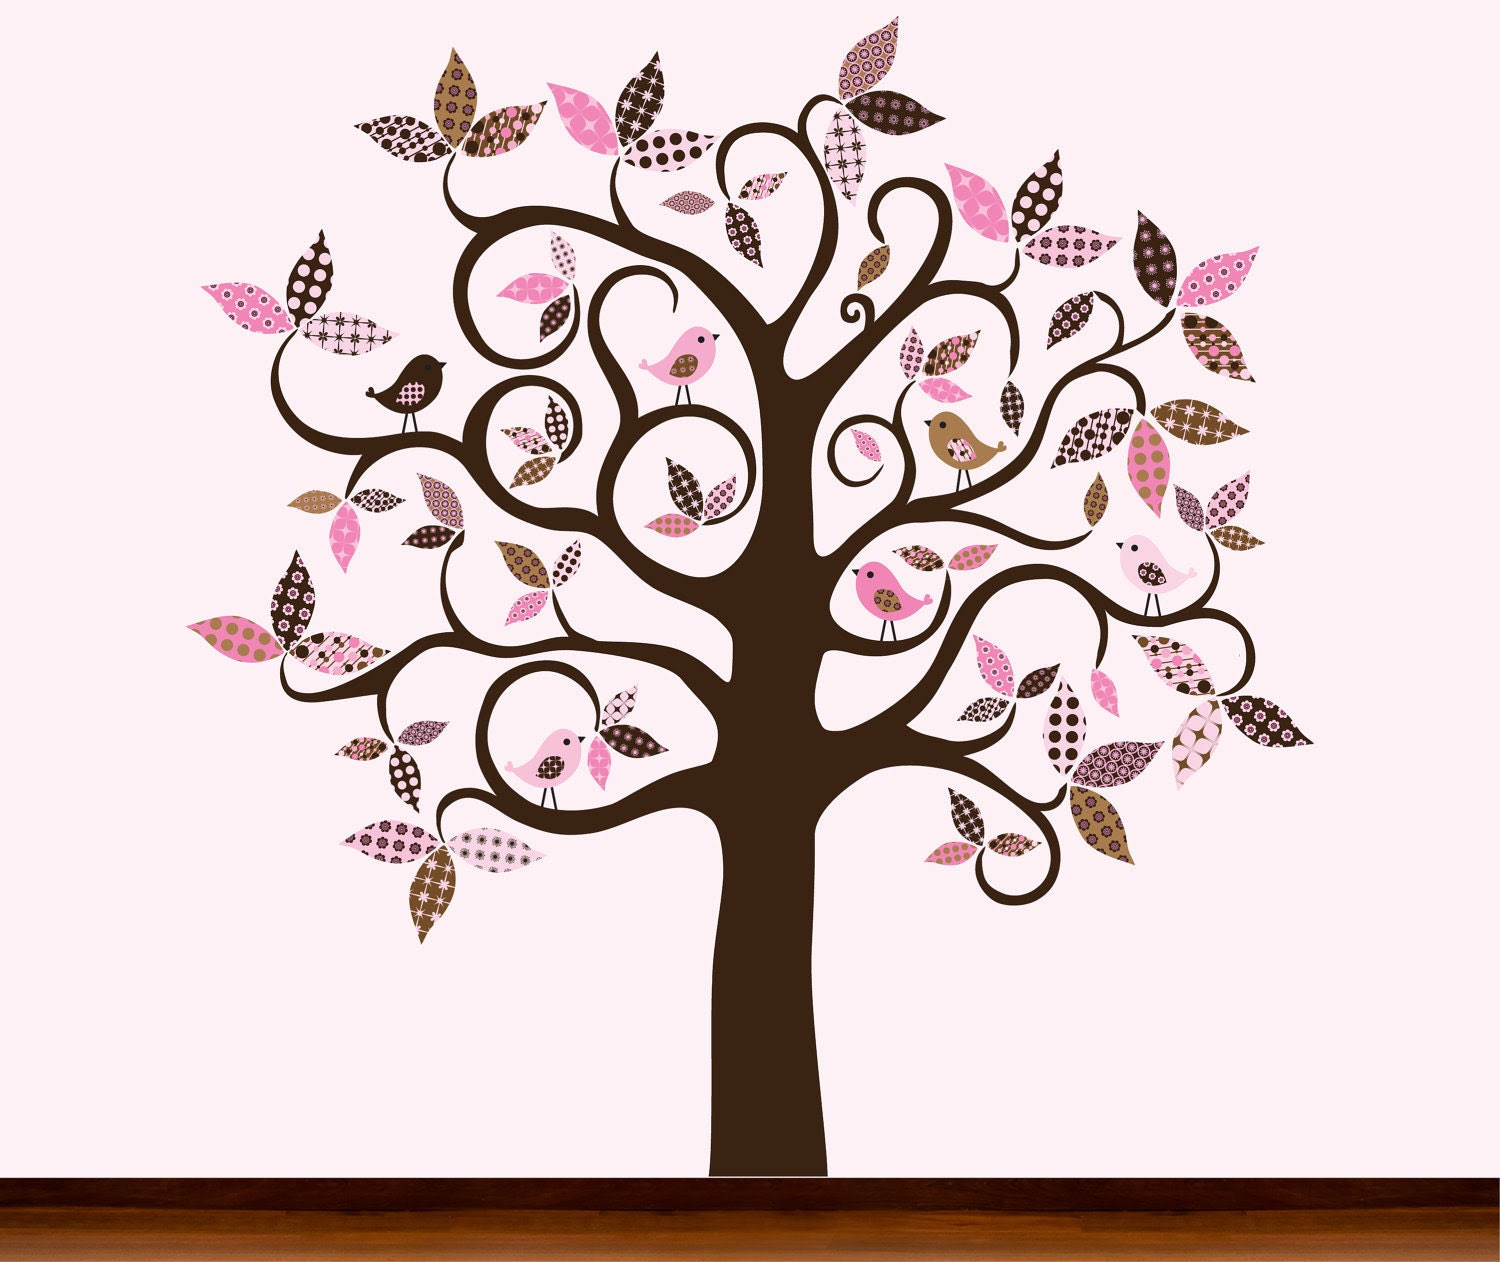 Pink and Brown Design - Chocolate Brown Pattern Tree with Birds - Vinyl Wall Art Decal